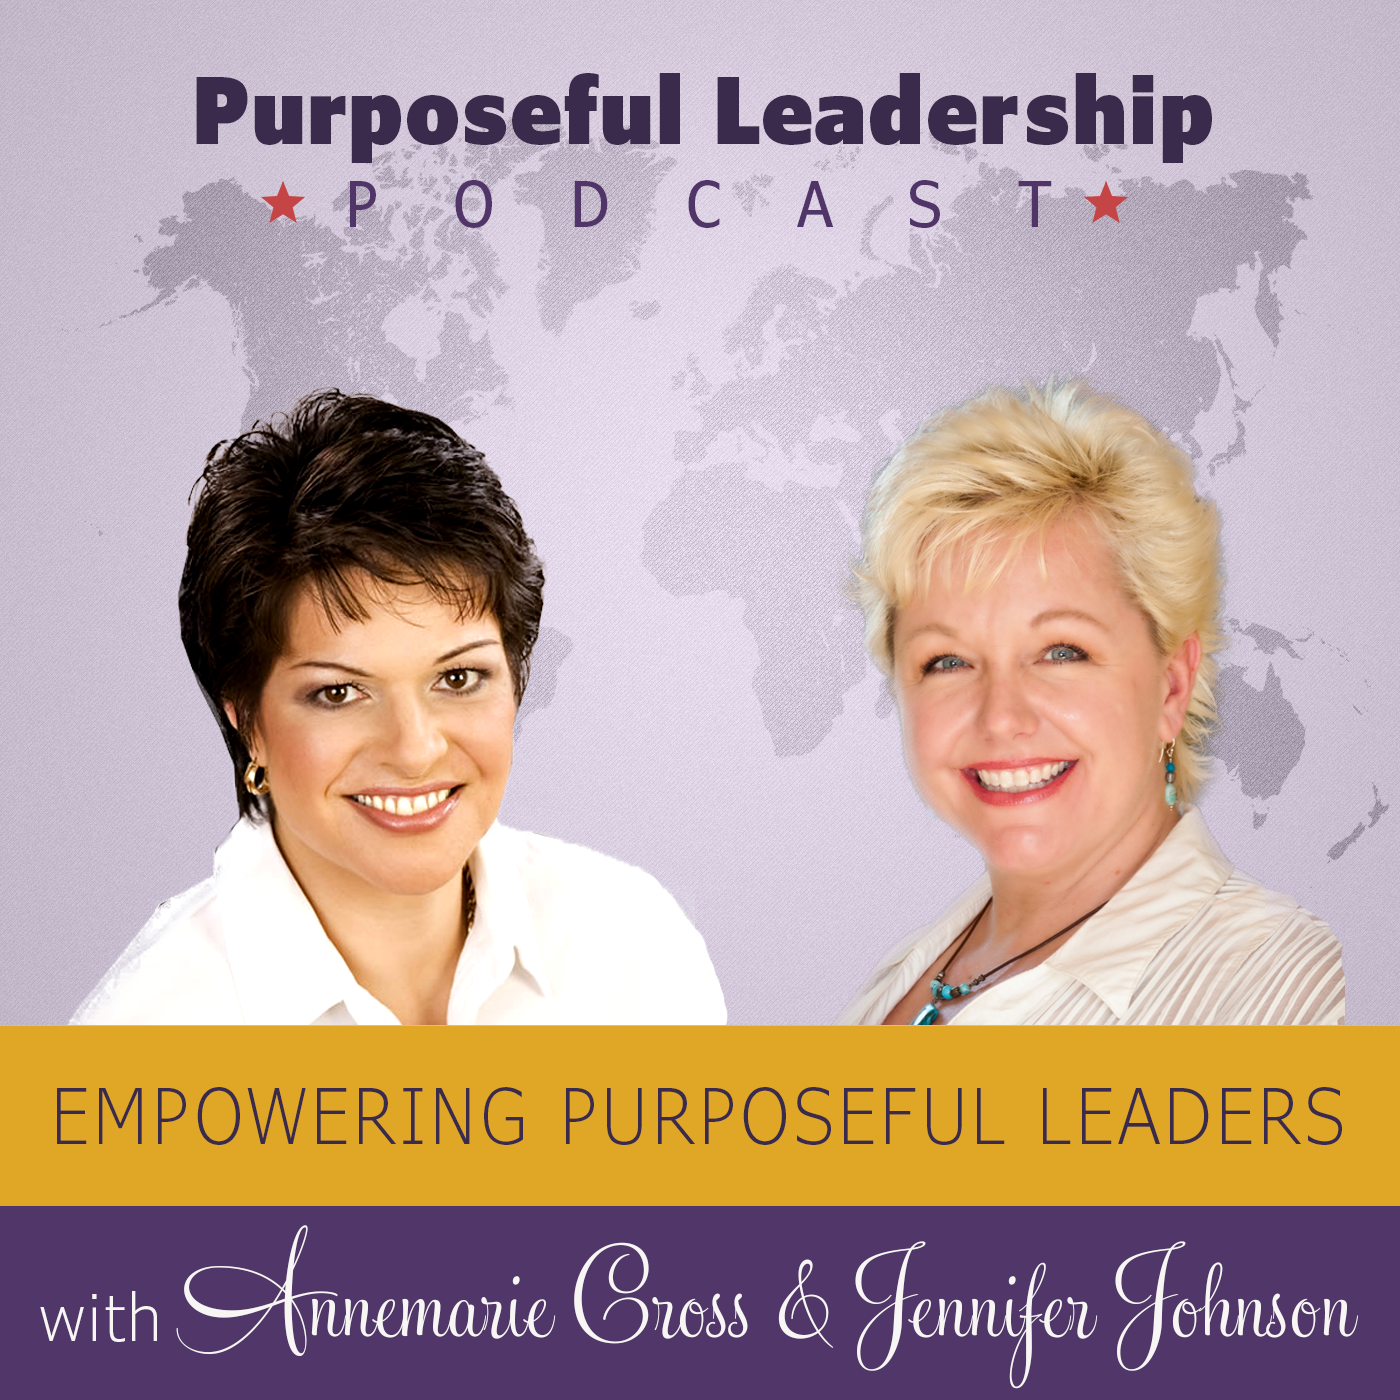 Purposeful Leadership Podcast - Annemarie Cross & Jennifer Sparkle Johnson